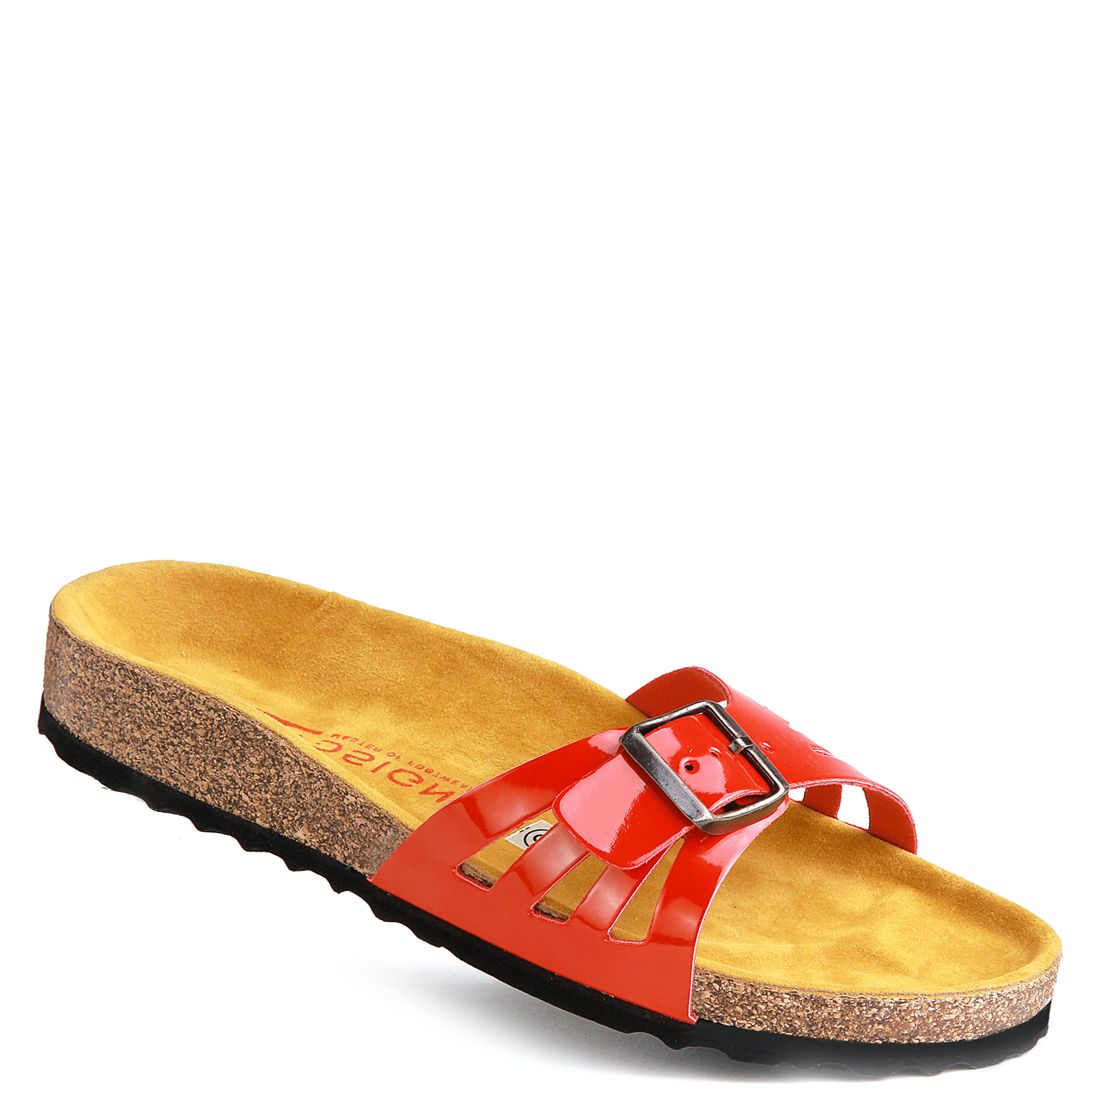 DSIGNES CASUAL CHAPPALS FOR WOMEN-ASTER